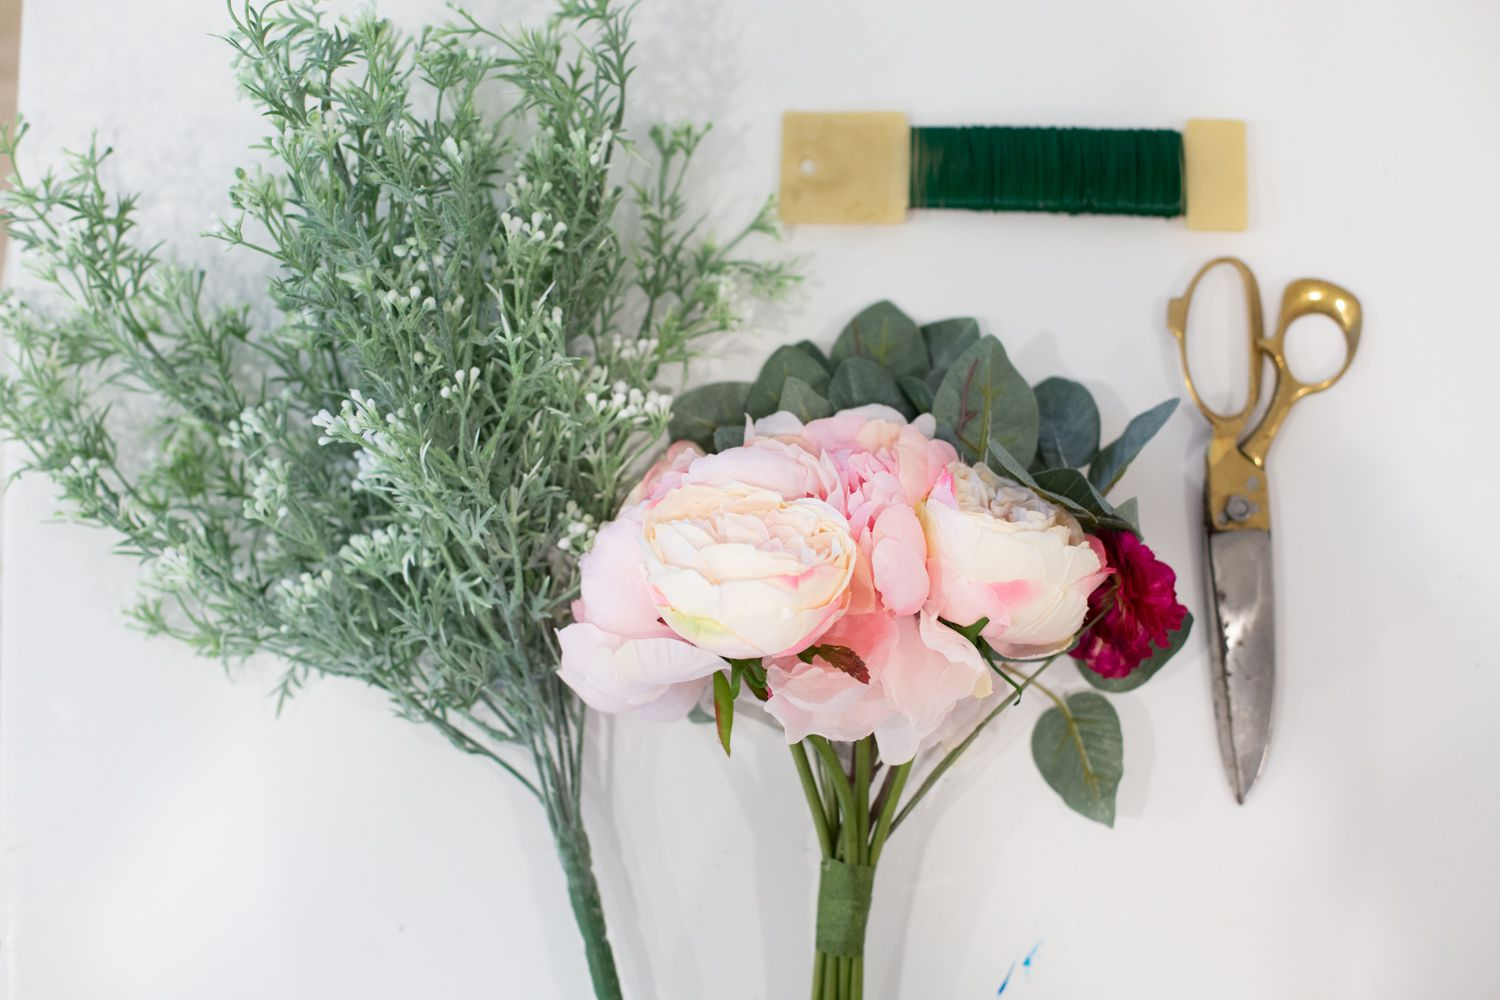 Materials for making a faux flower crown